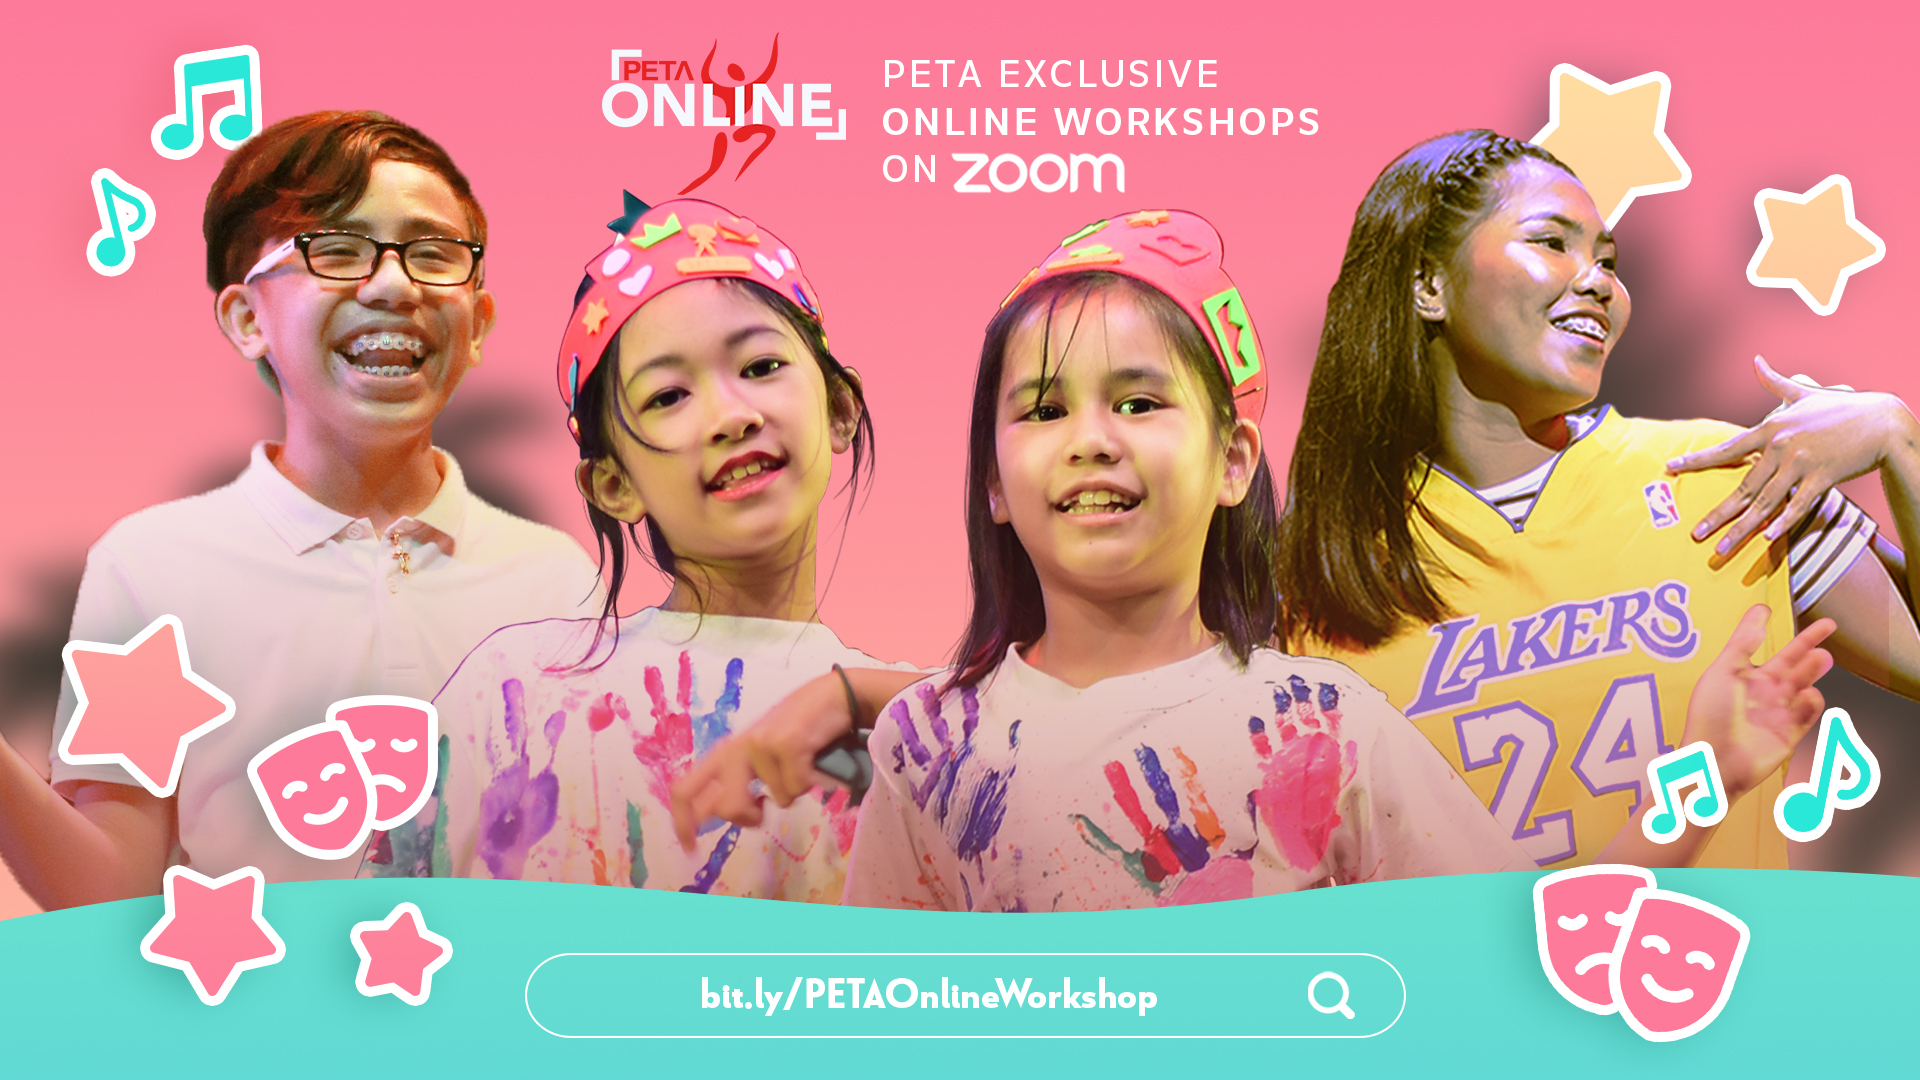 These Online Summer Workshops from PETA are perfect for kids and teens